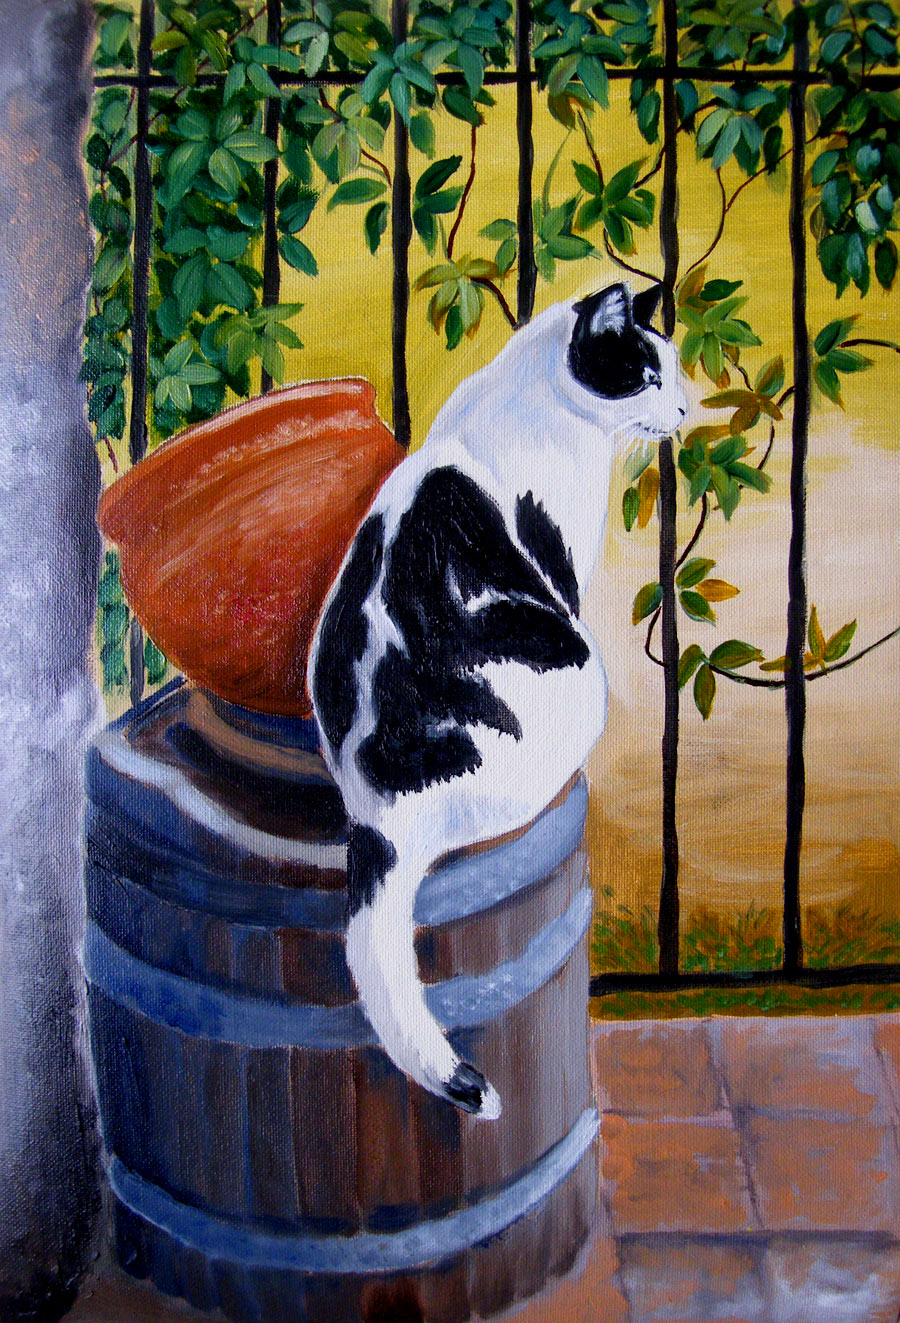 Patryk cat on a barrel - oil painting